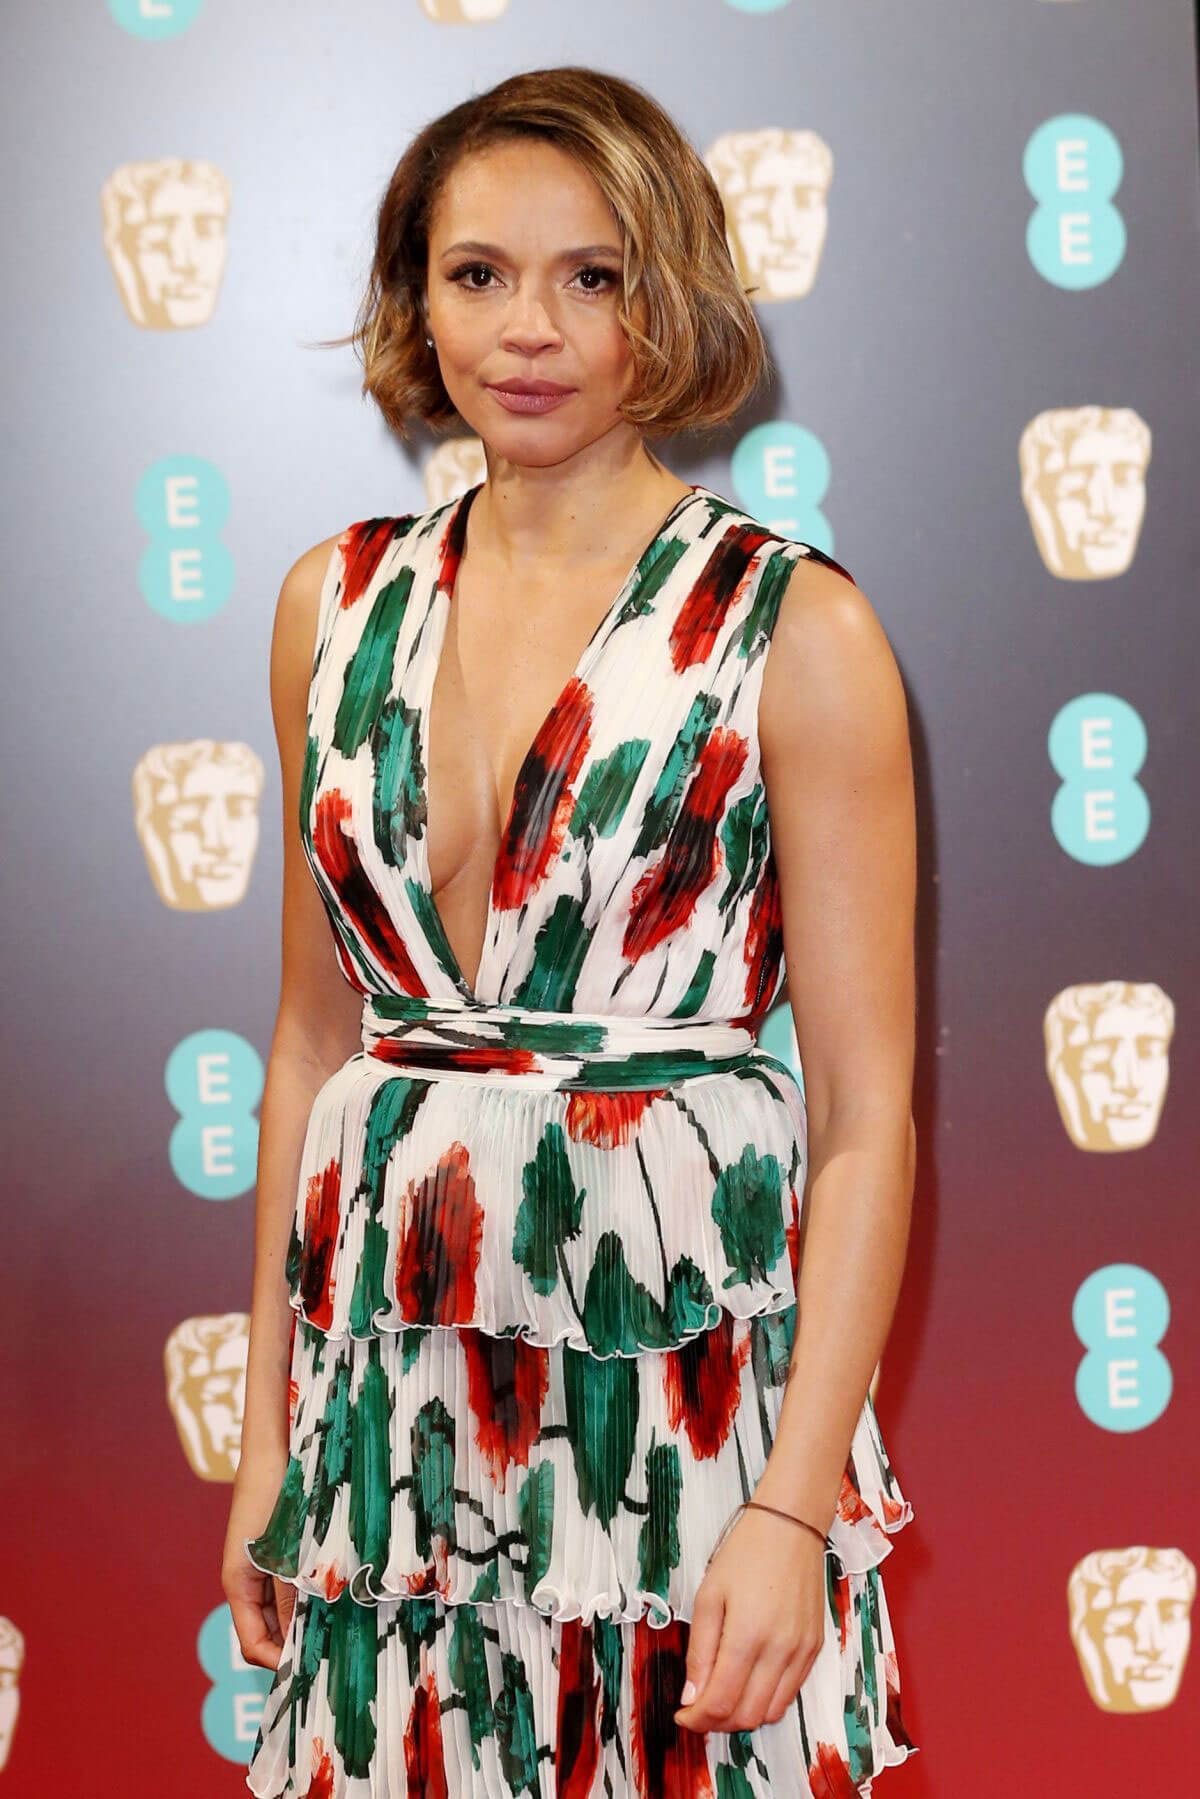 Carmen Ejogo Stills at Bafta 2017 Awards in London